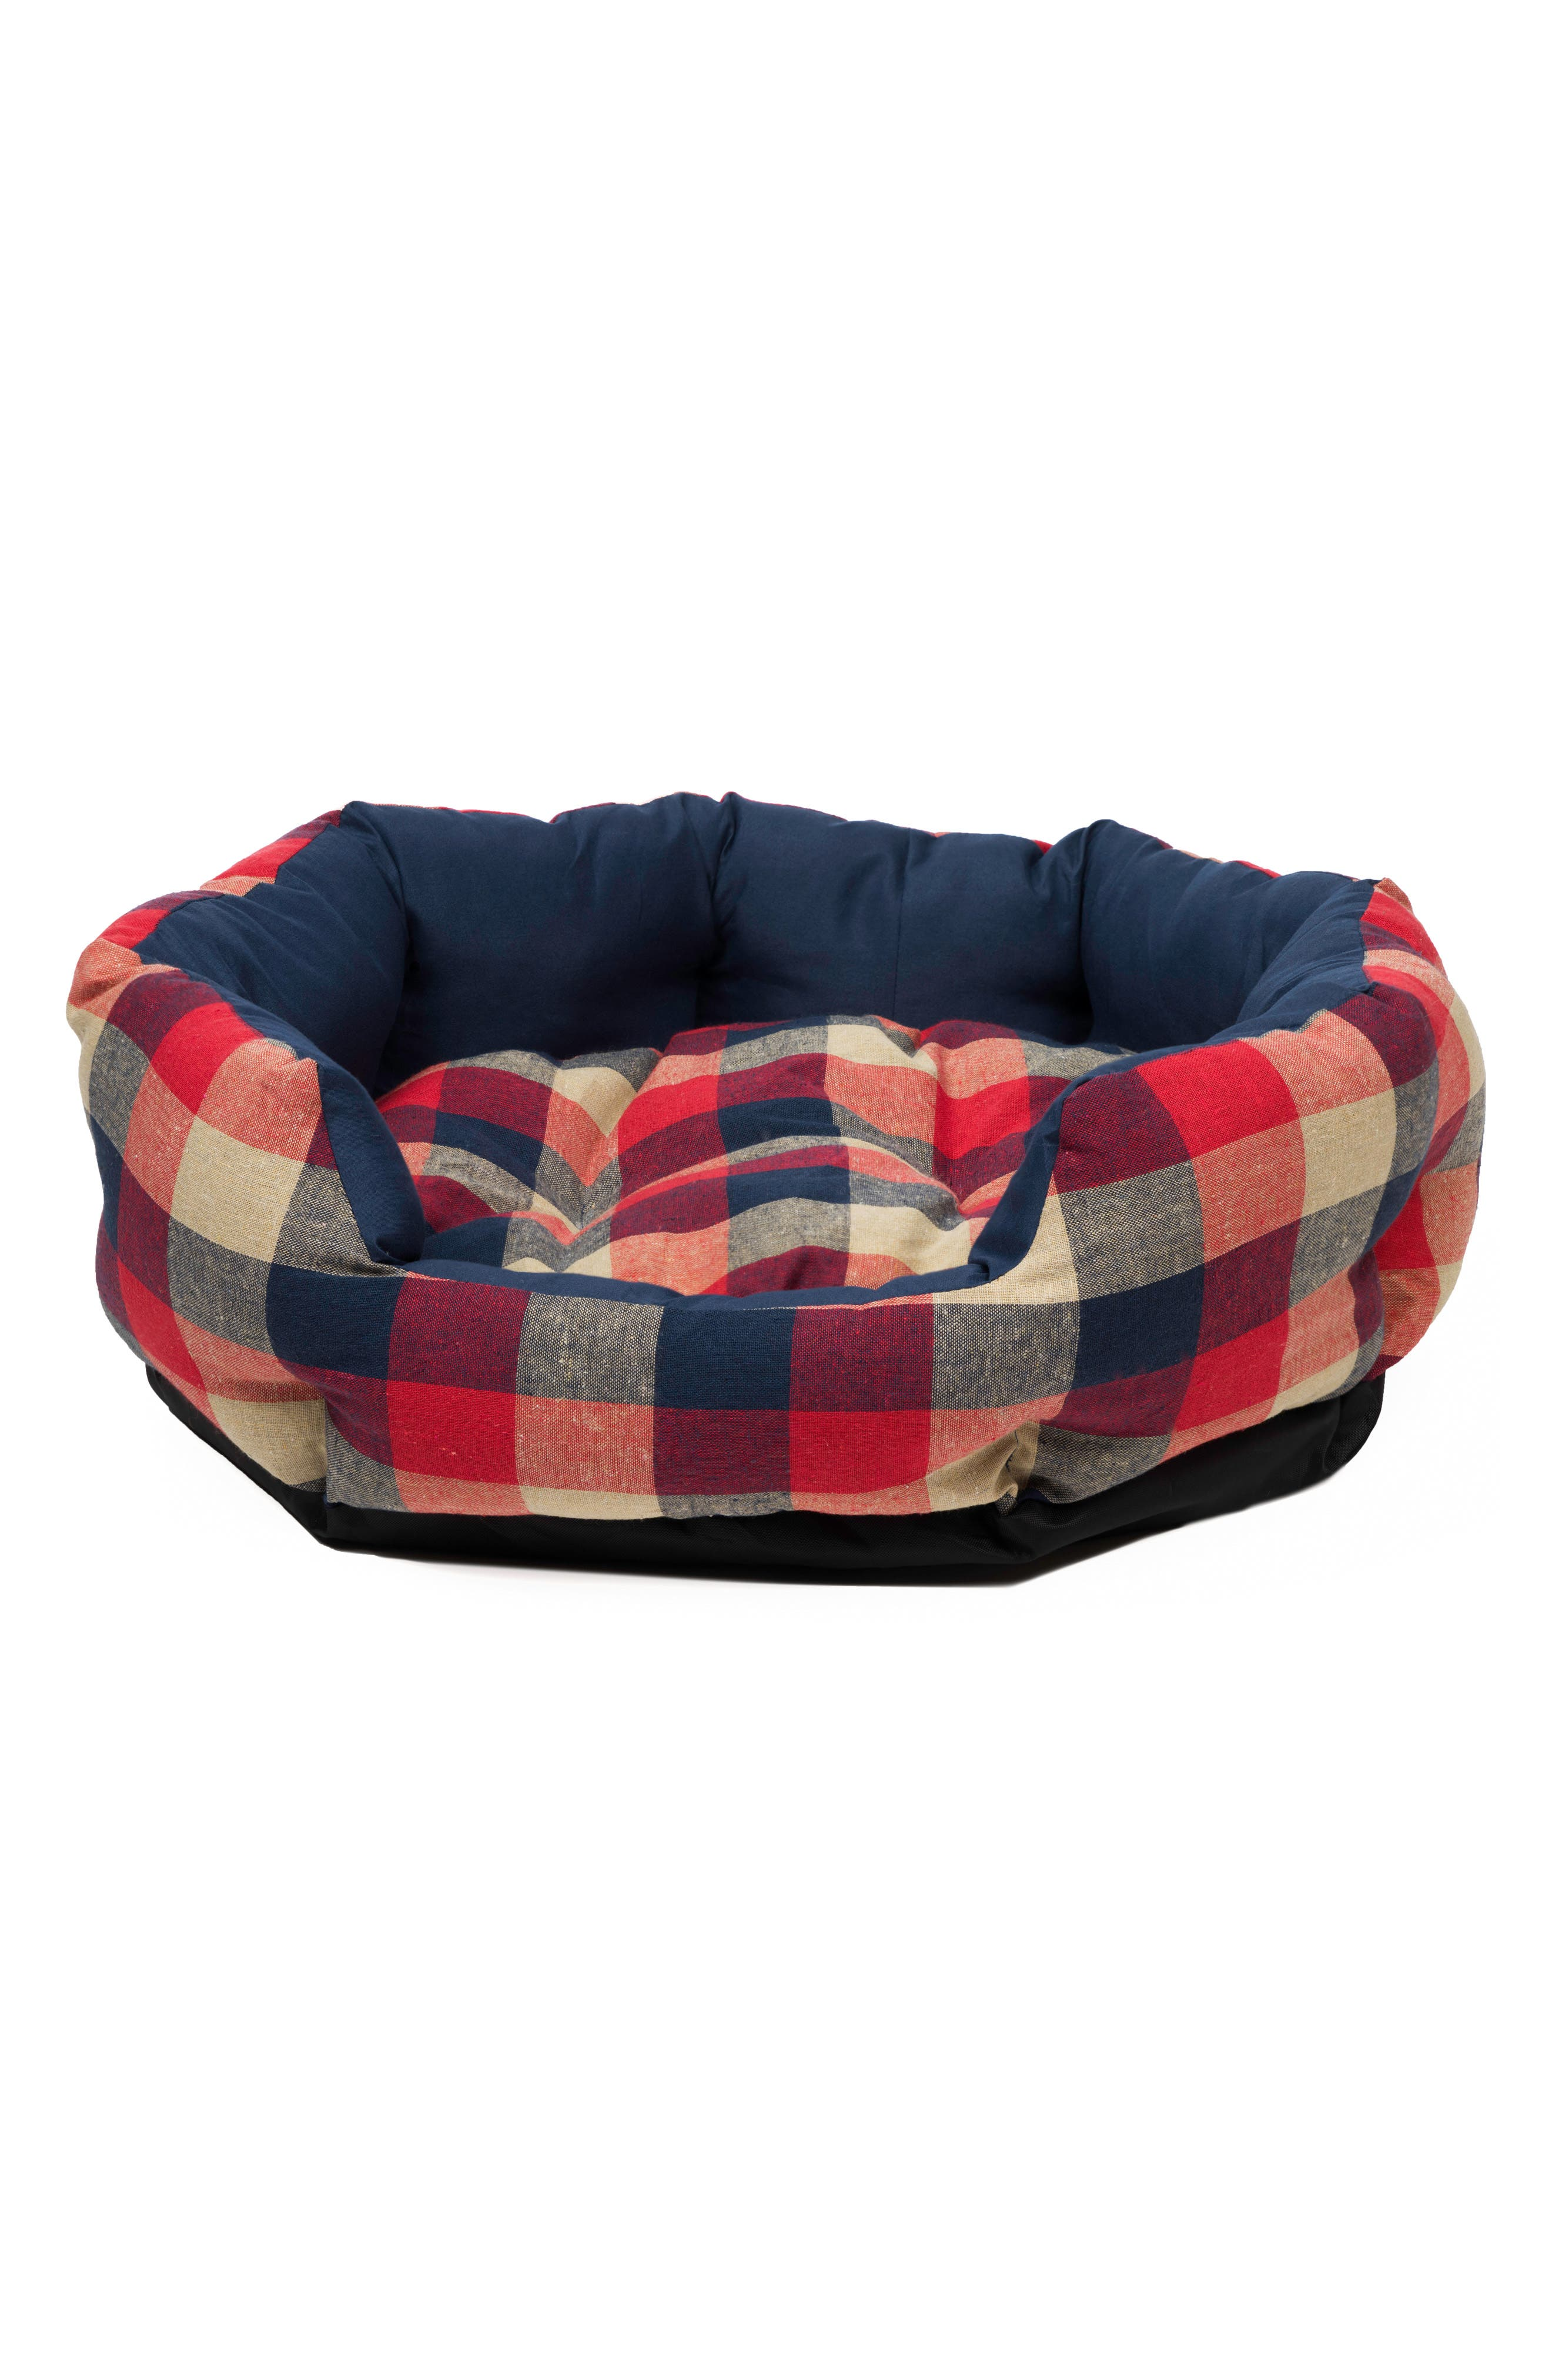 Duck River Textile Hasley Round Pet Bed